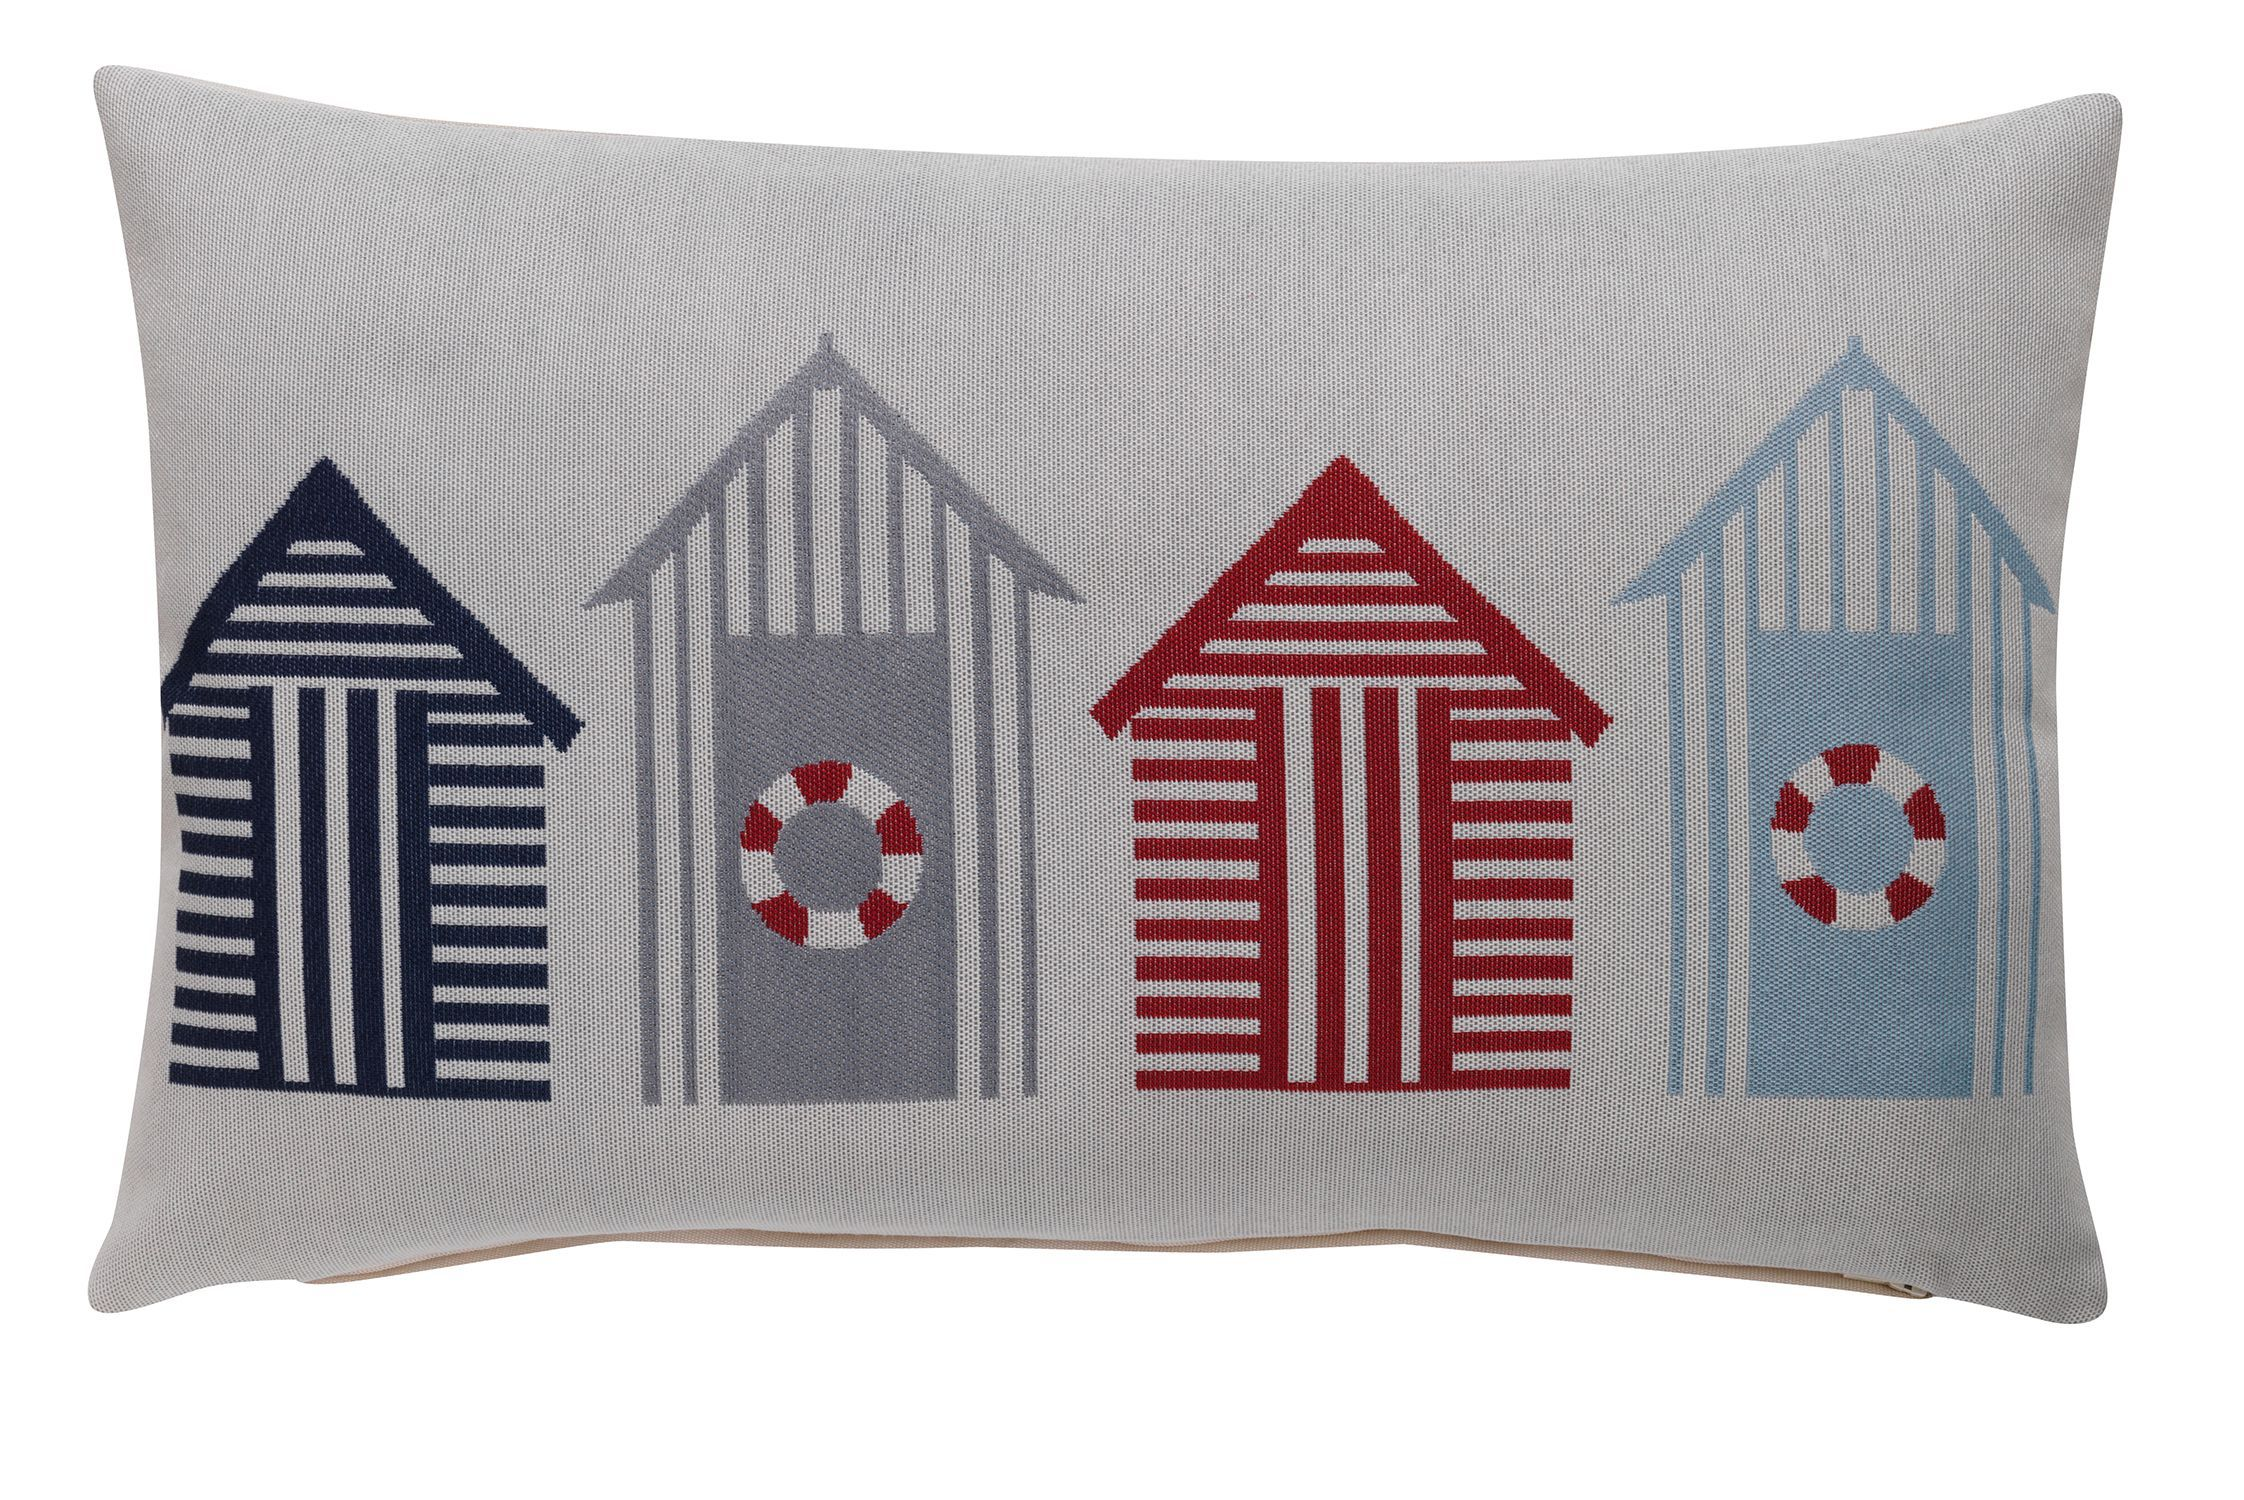 Jacquard beach huts cushion